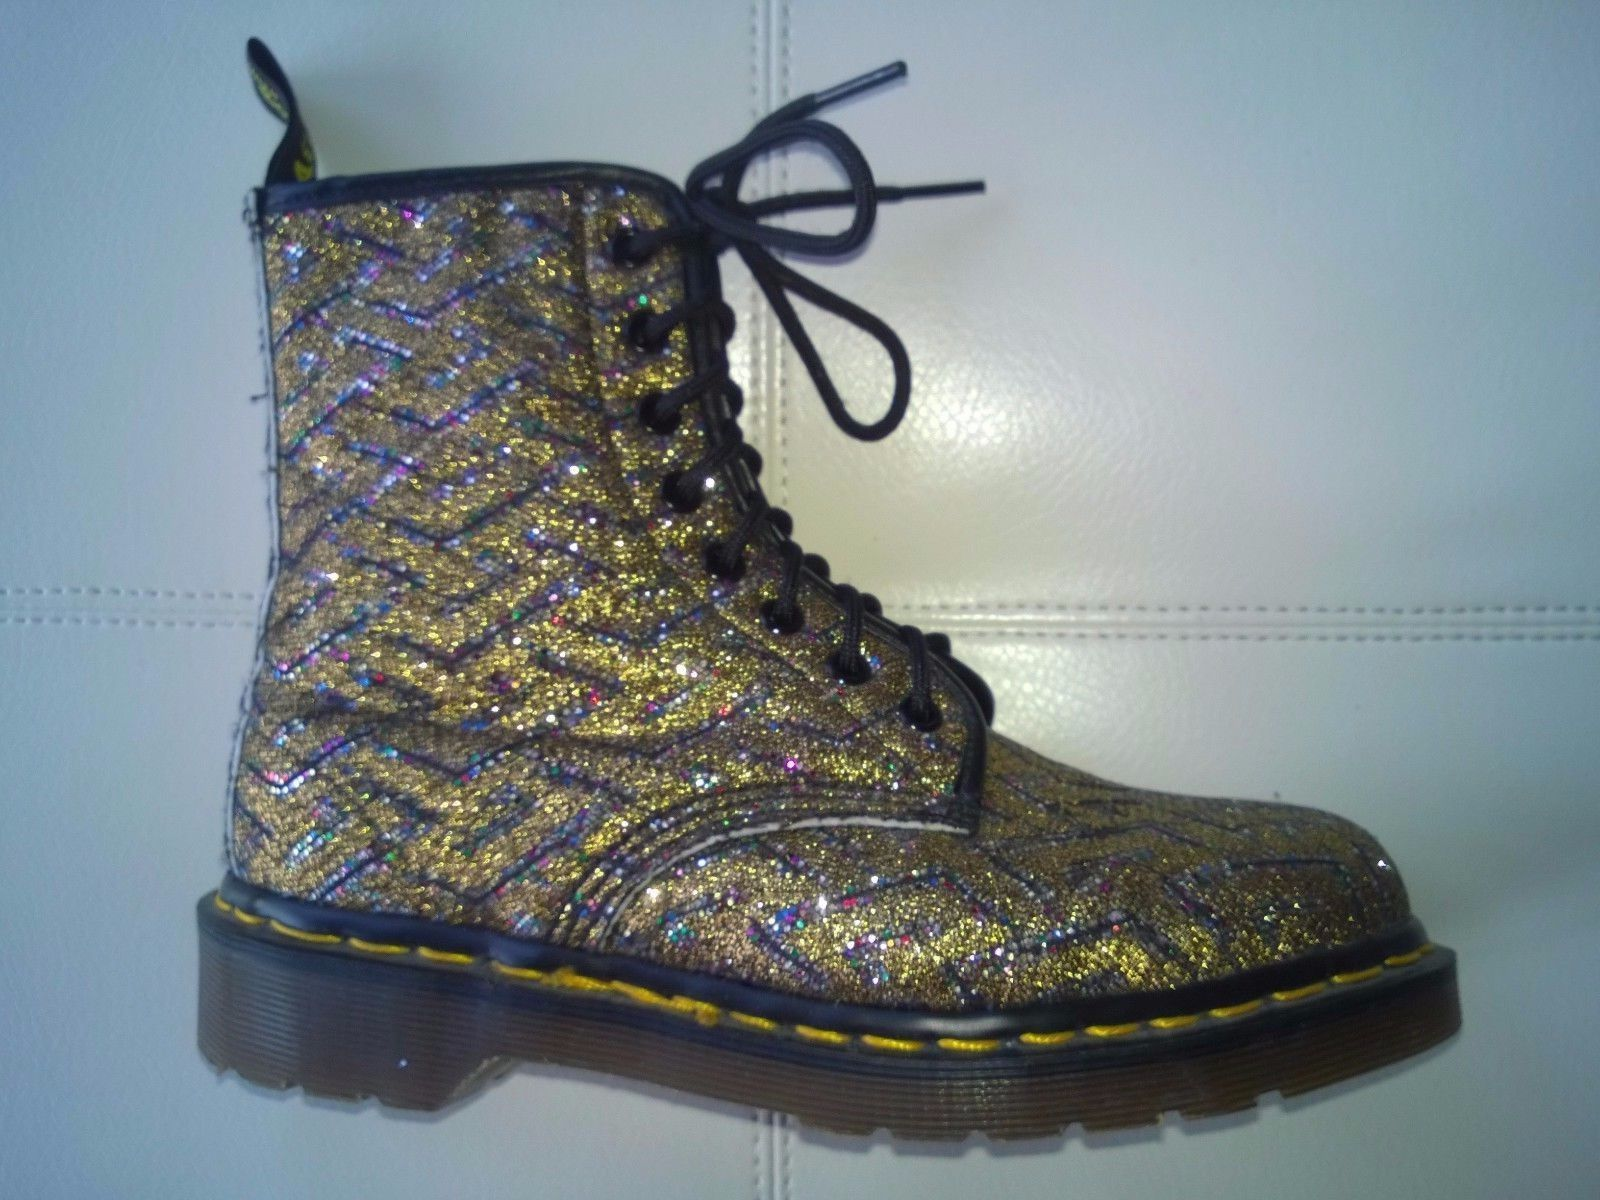 Doc Dr Made Vintage Glitter Gold Boot Martens In Rare 5RjAq4Lc3